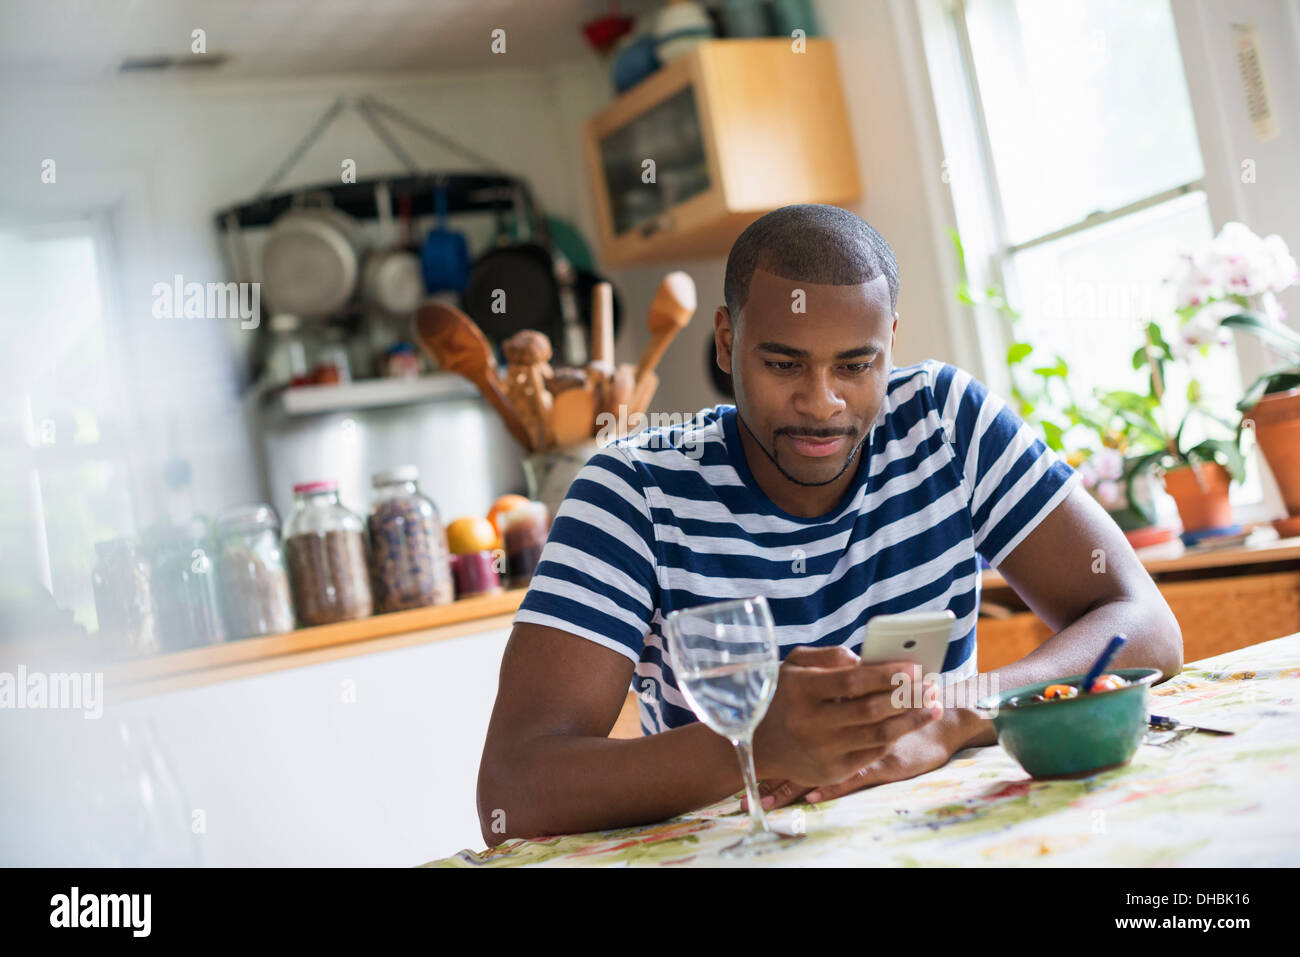 A man sitting at a table using a smart phone. Fruit dessert and a glass of wine at hand. - Stock Image